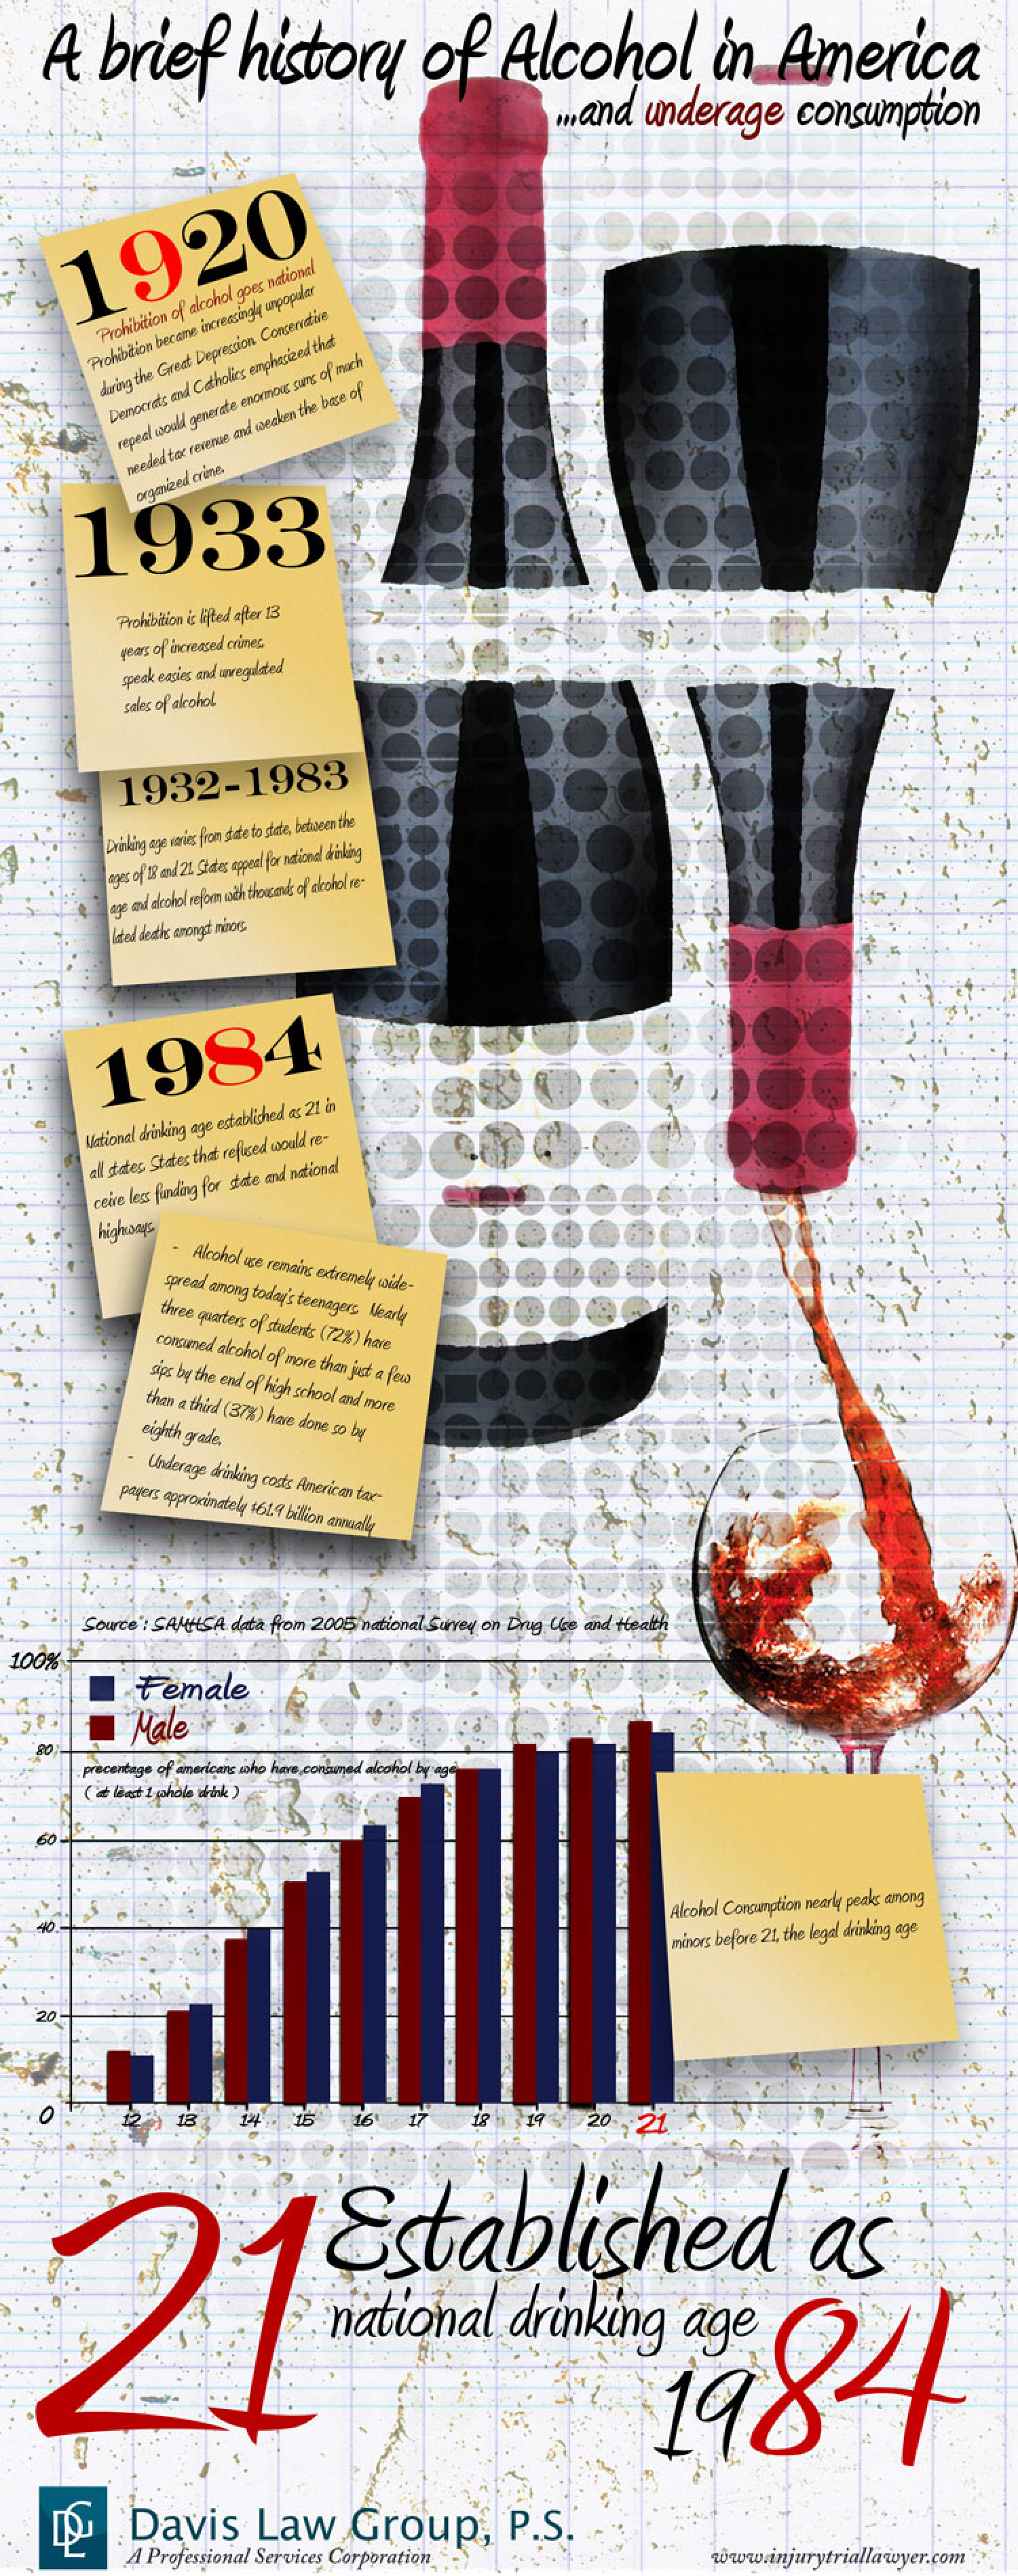 A Brief History of Alcohol in America and Underage Consumption Infographic